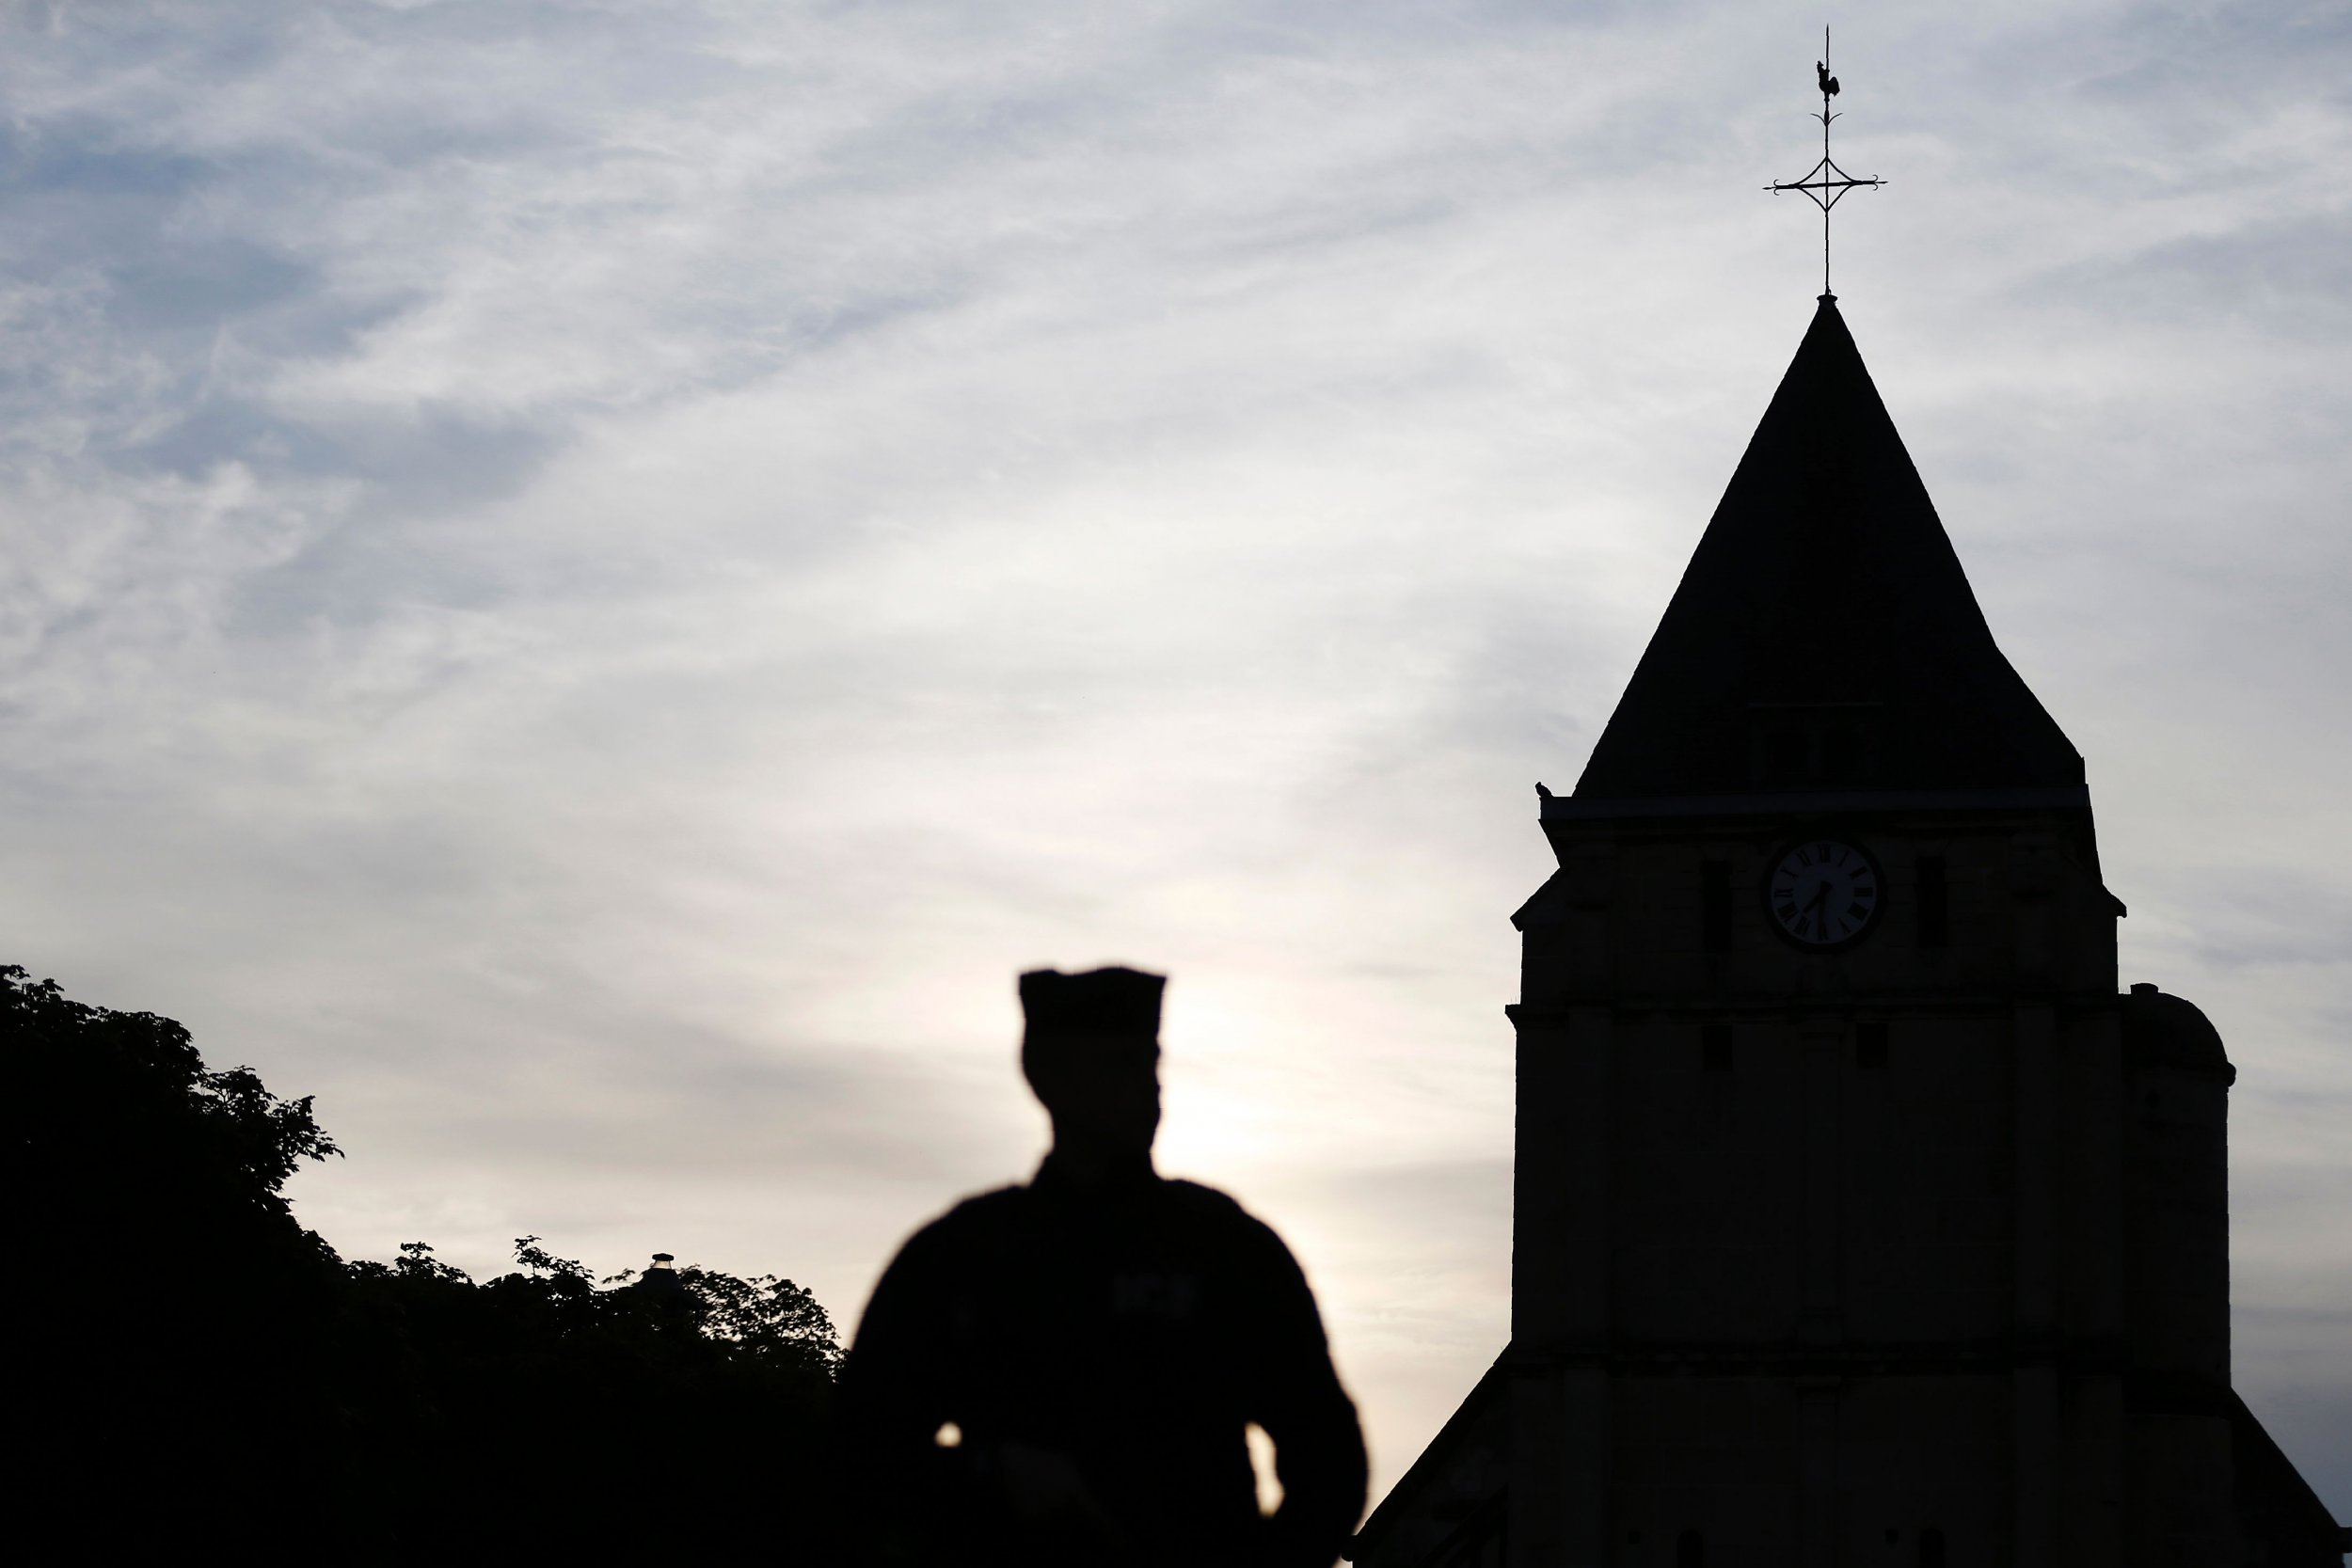 Mosque In Town Of Isis Inspired Priest Attack Was Opened